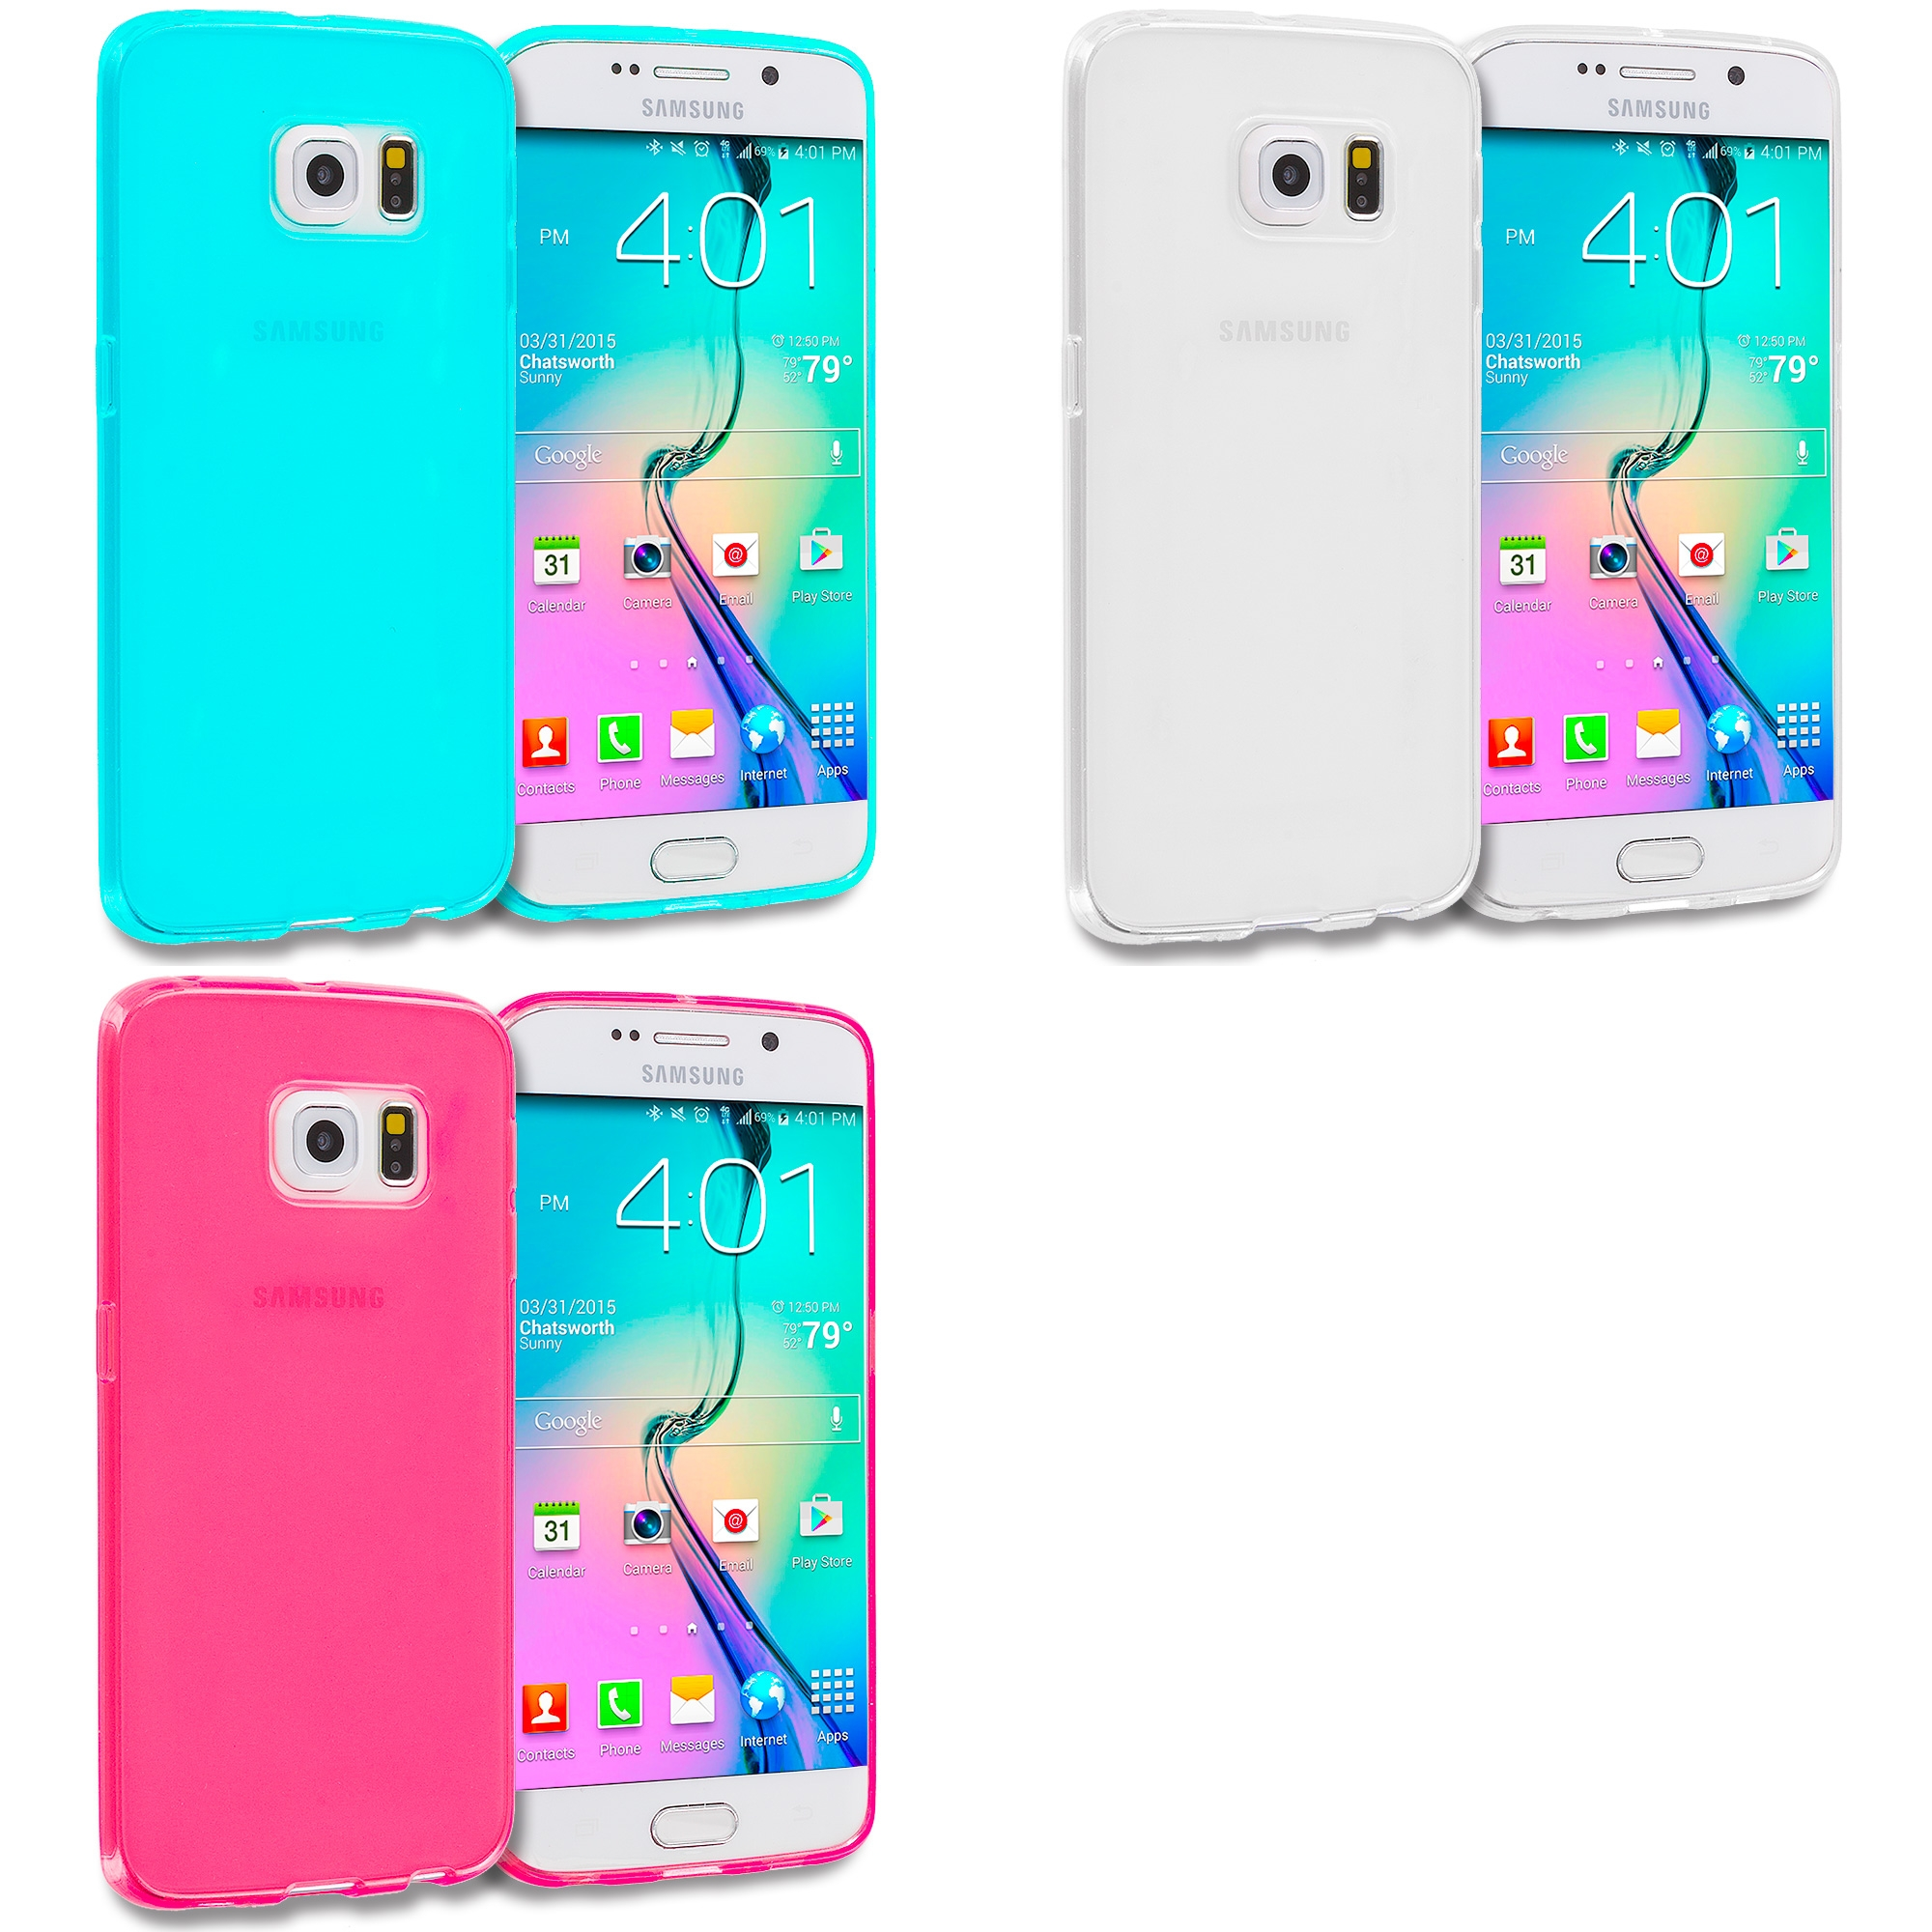 Samsung Galaxy S6 Edge 3 in 1 Combo Bundle Pack - Plain TPU Rubber Skin Case Cover